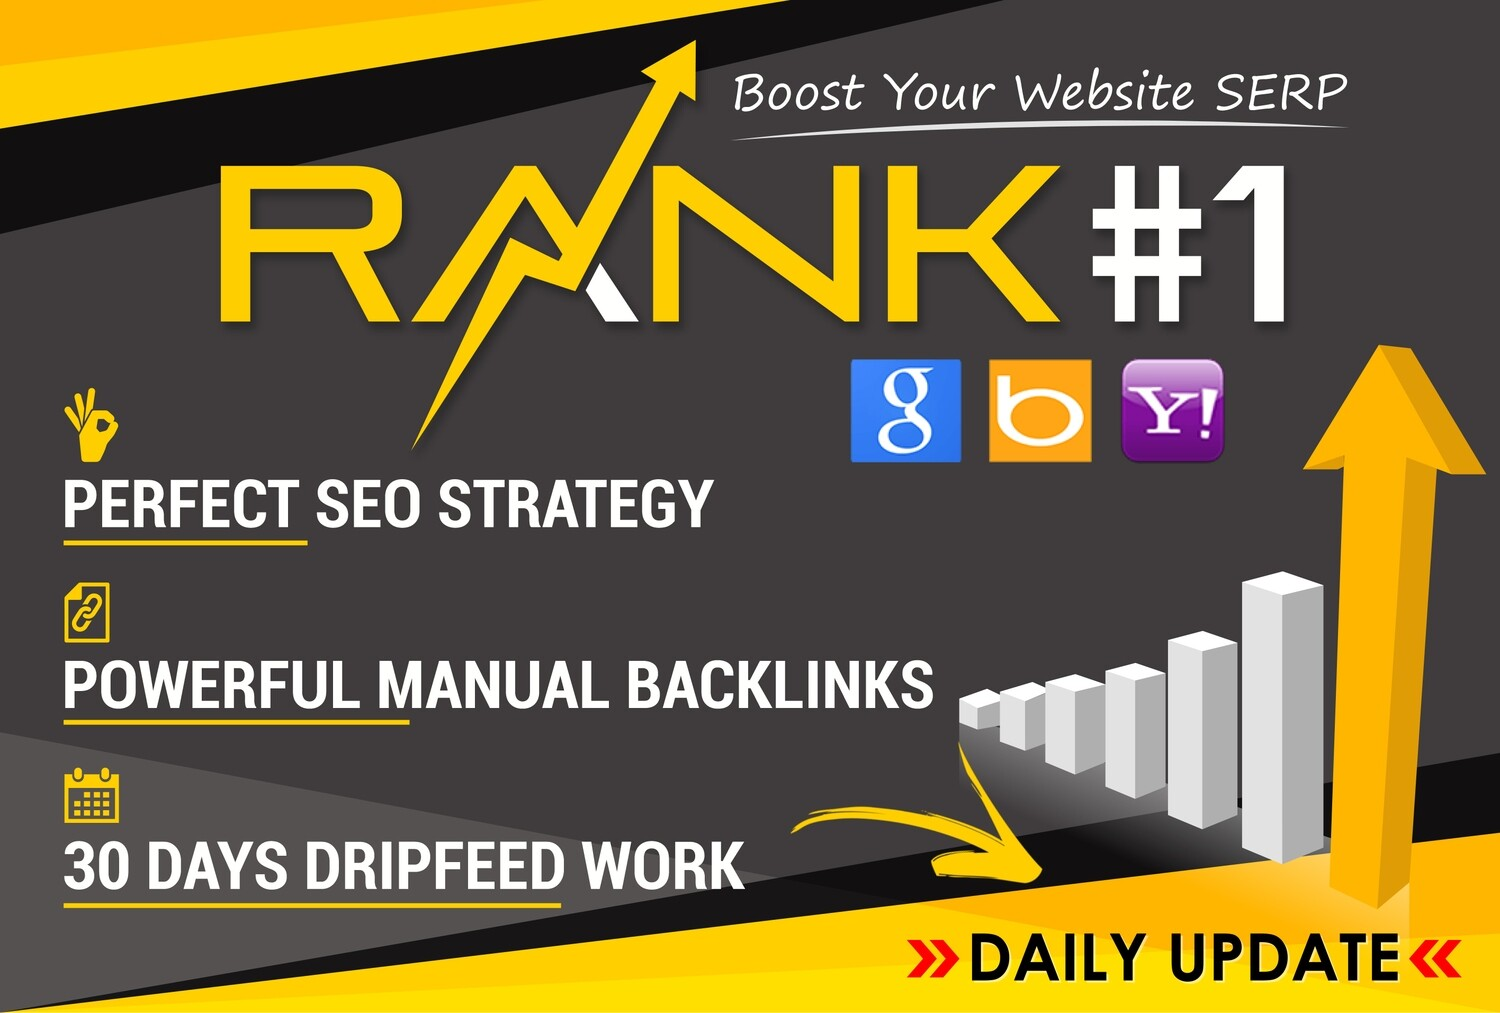 Rank Your Website on Google, 30 Days SEO Backlinks Manually for $460